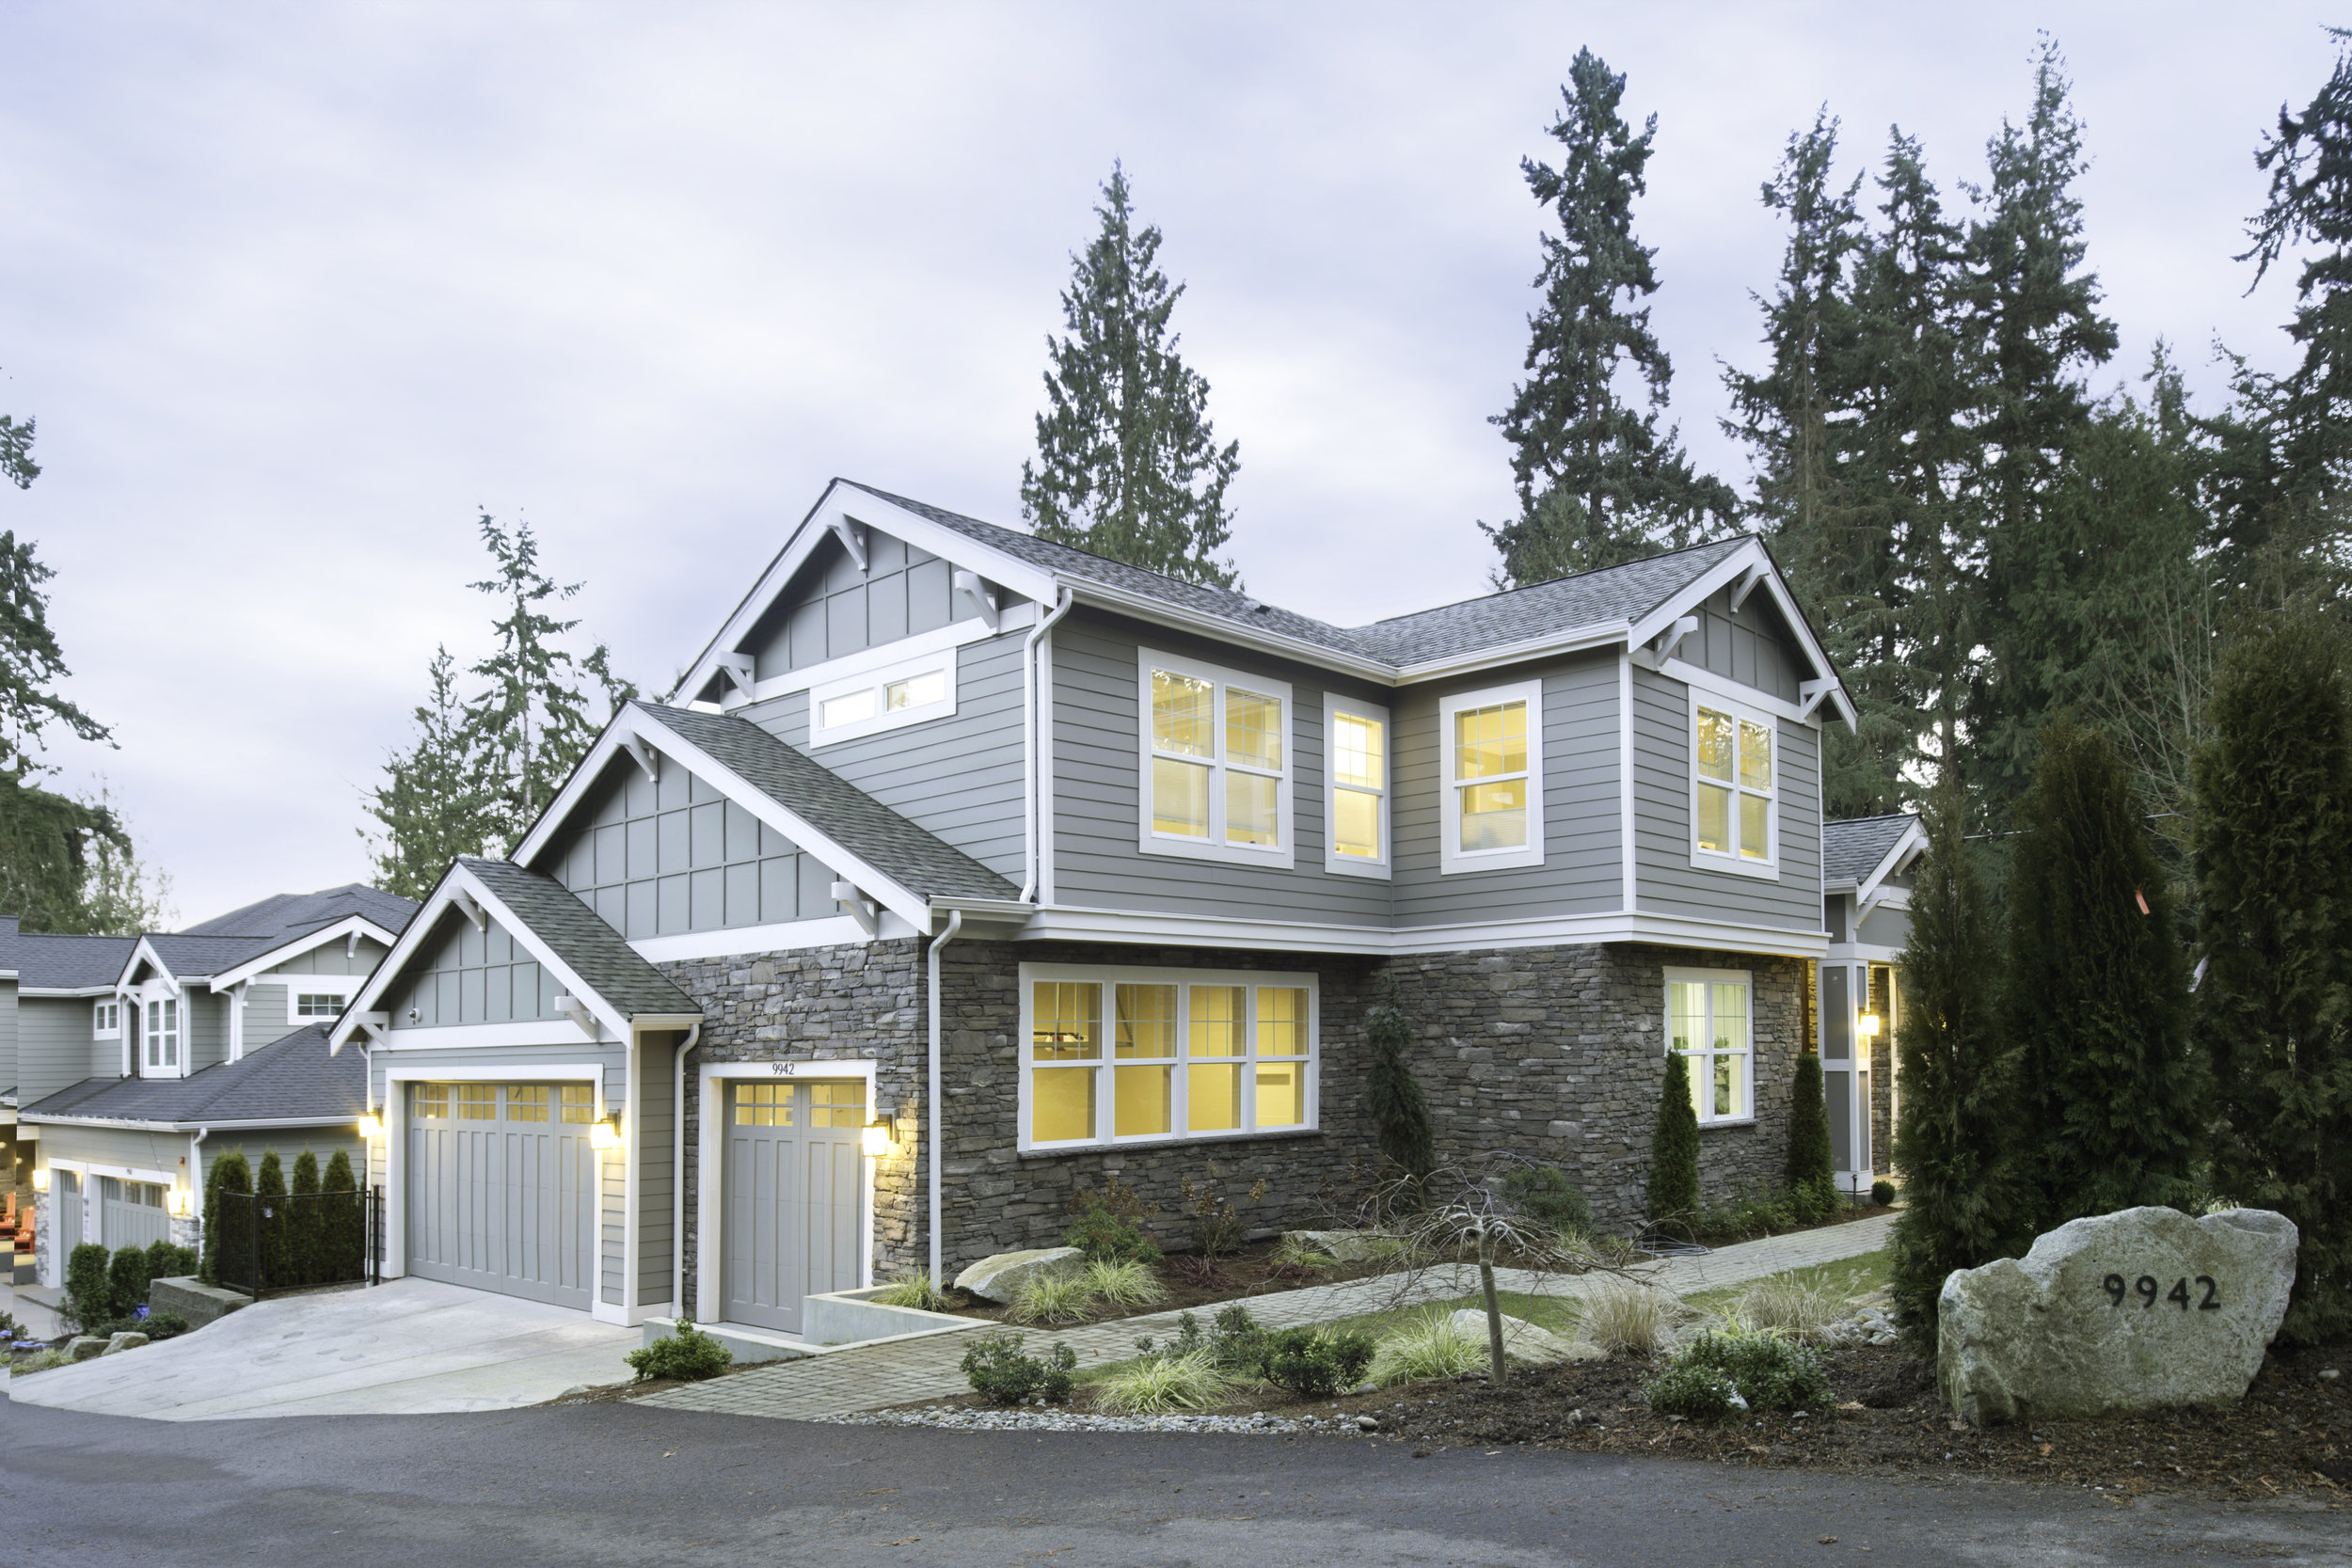 9942 SE 39th St, Mercer Island $2,700,000 7 Bed, 5.5 Bath, 4705 SQ FT